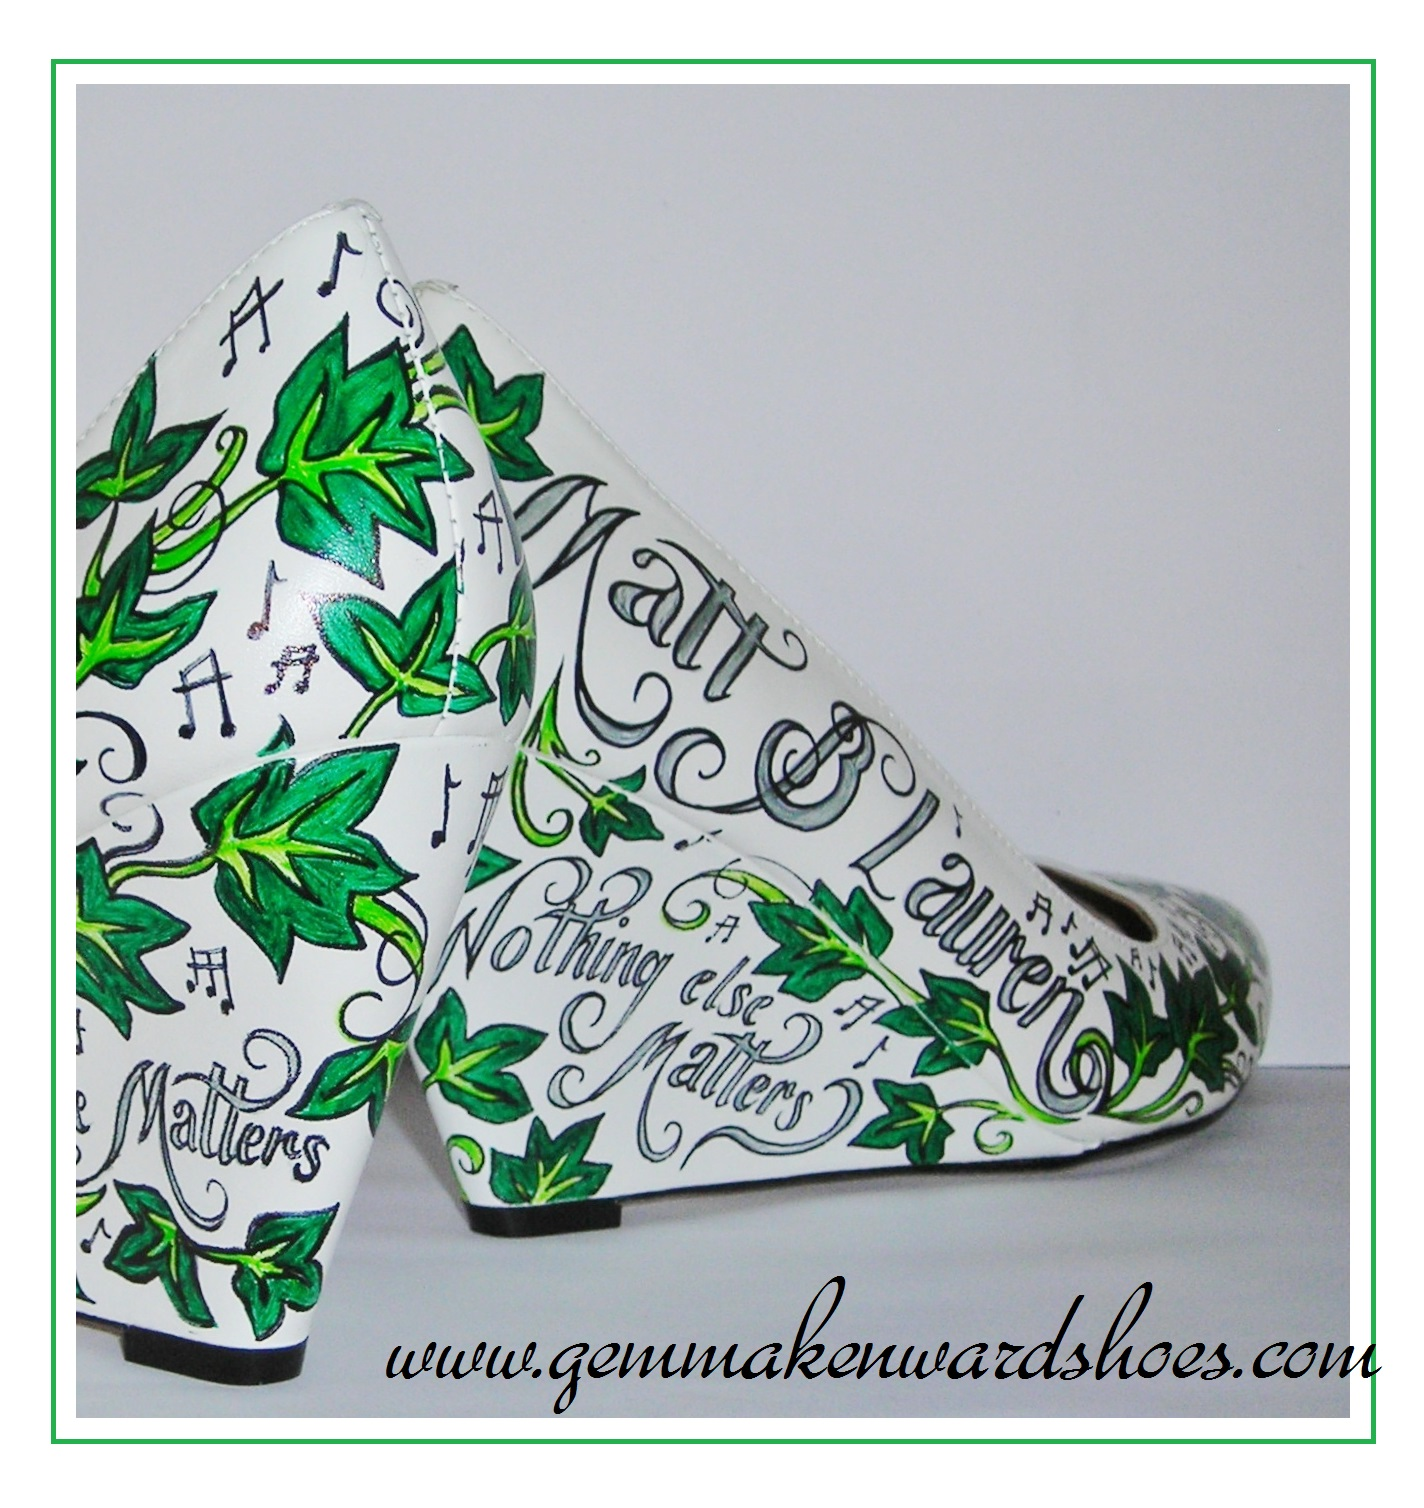 'Nothing Else Matters' Metallica lyrics painted onto a pair of wedges.